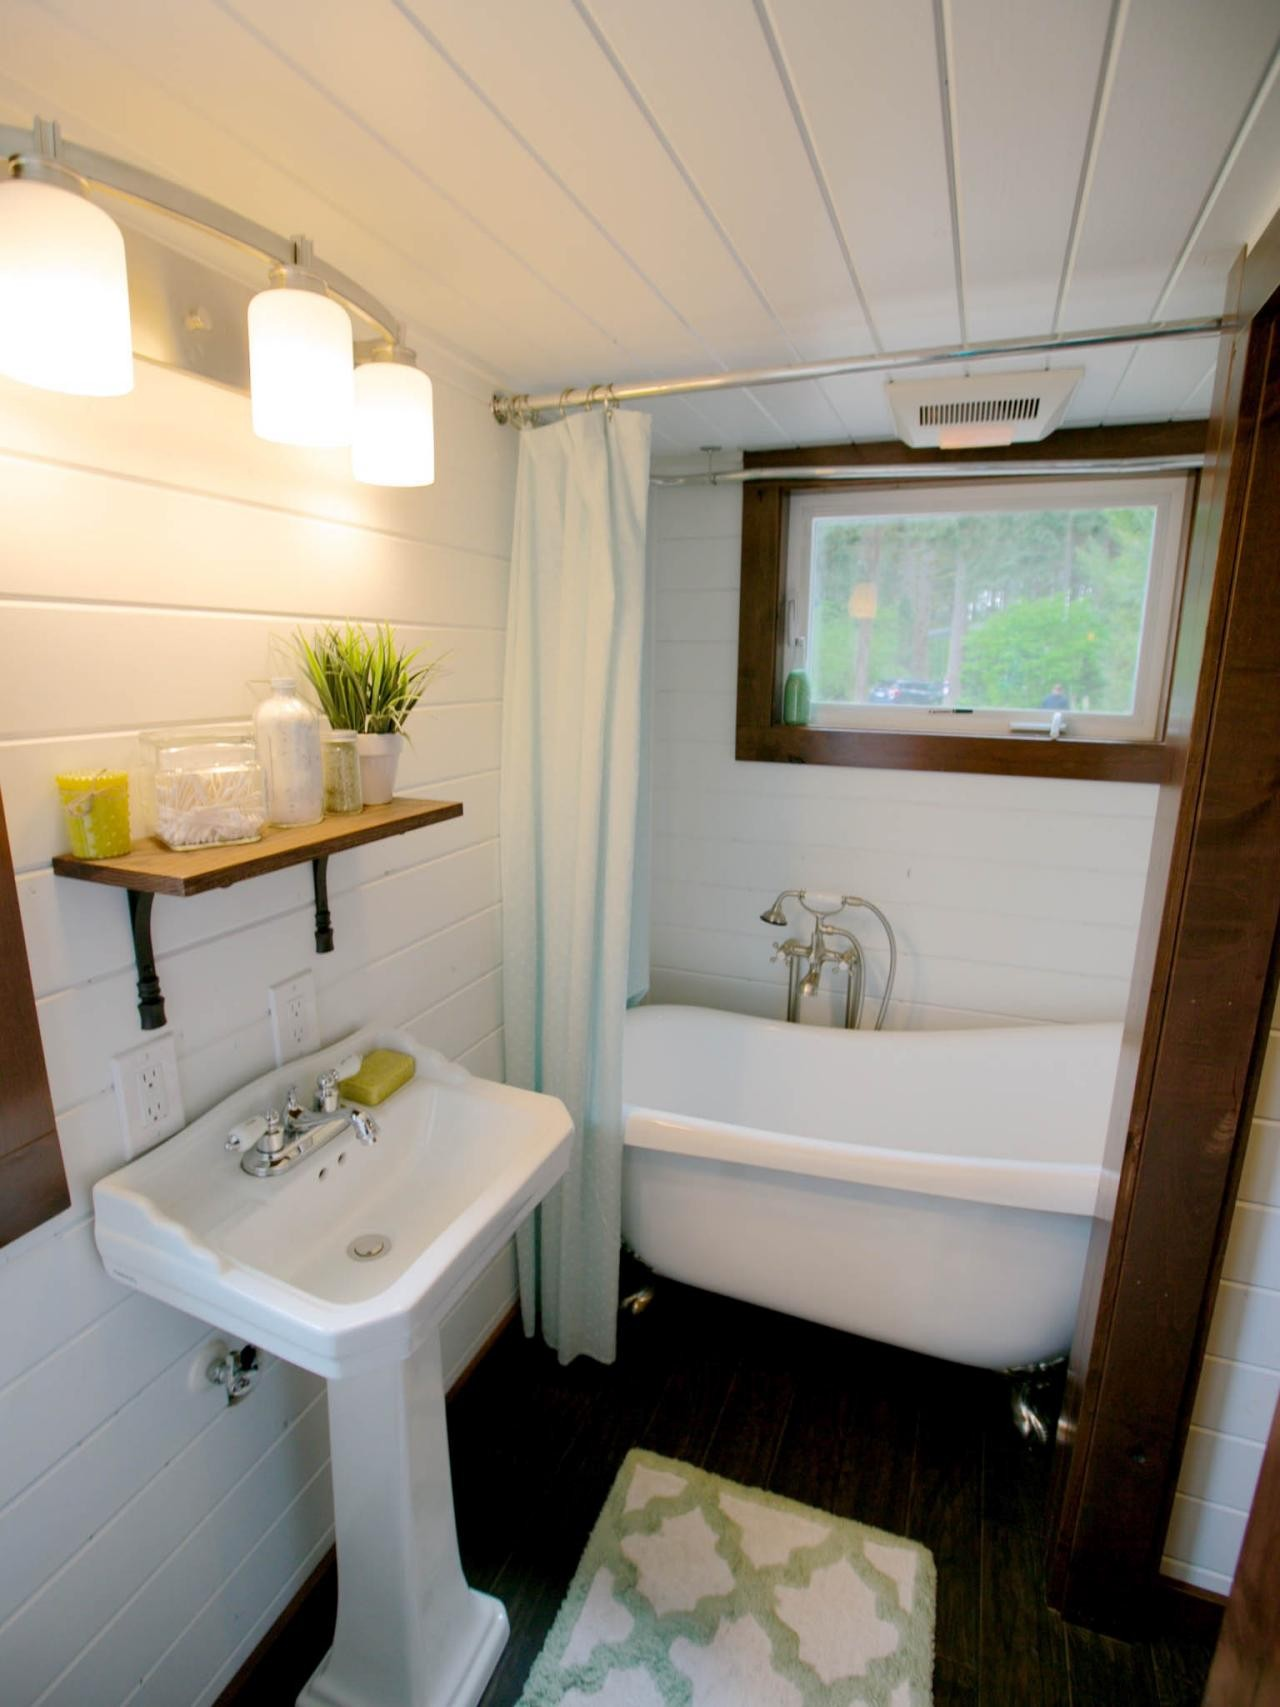 Superieur Amazing Tiny House Bathroom Ideas   Bathroom Design Ideas Gallery Image And  Wallpaper